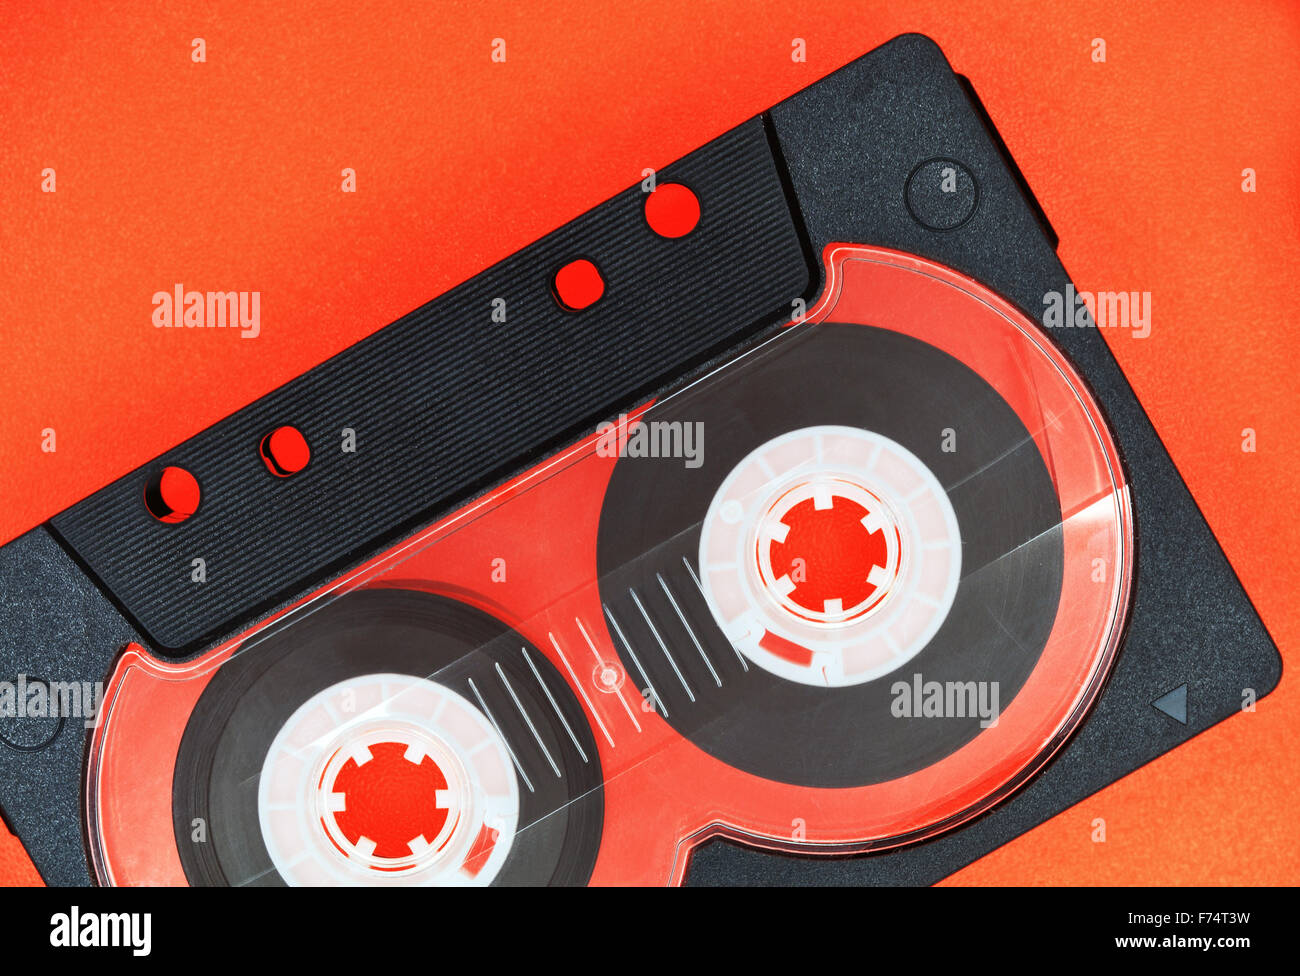 Compact cassette - Stock Image